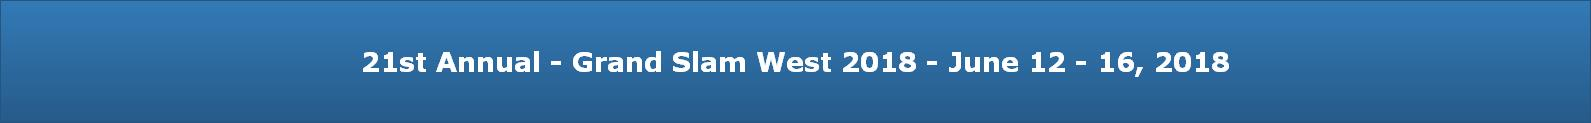 20th Annual - Grand Slam West 2017 - June 6 - 10, 2017